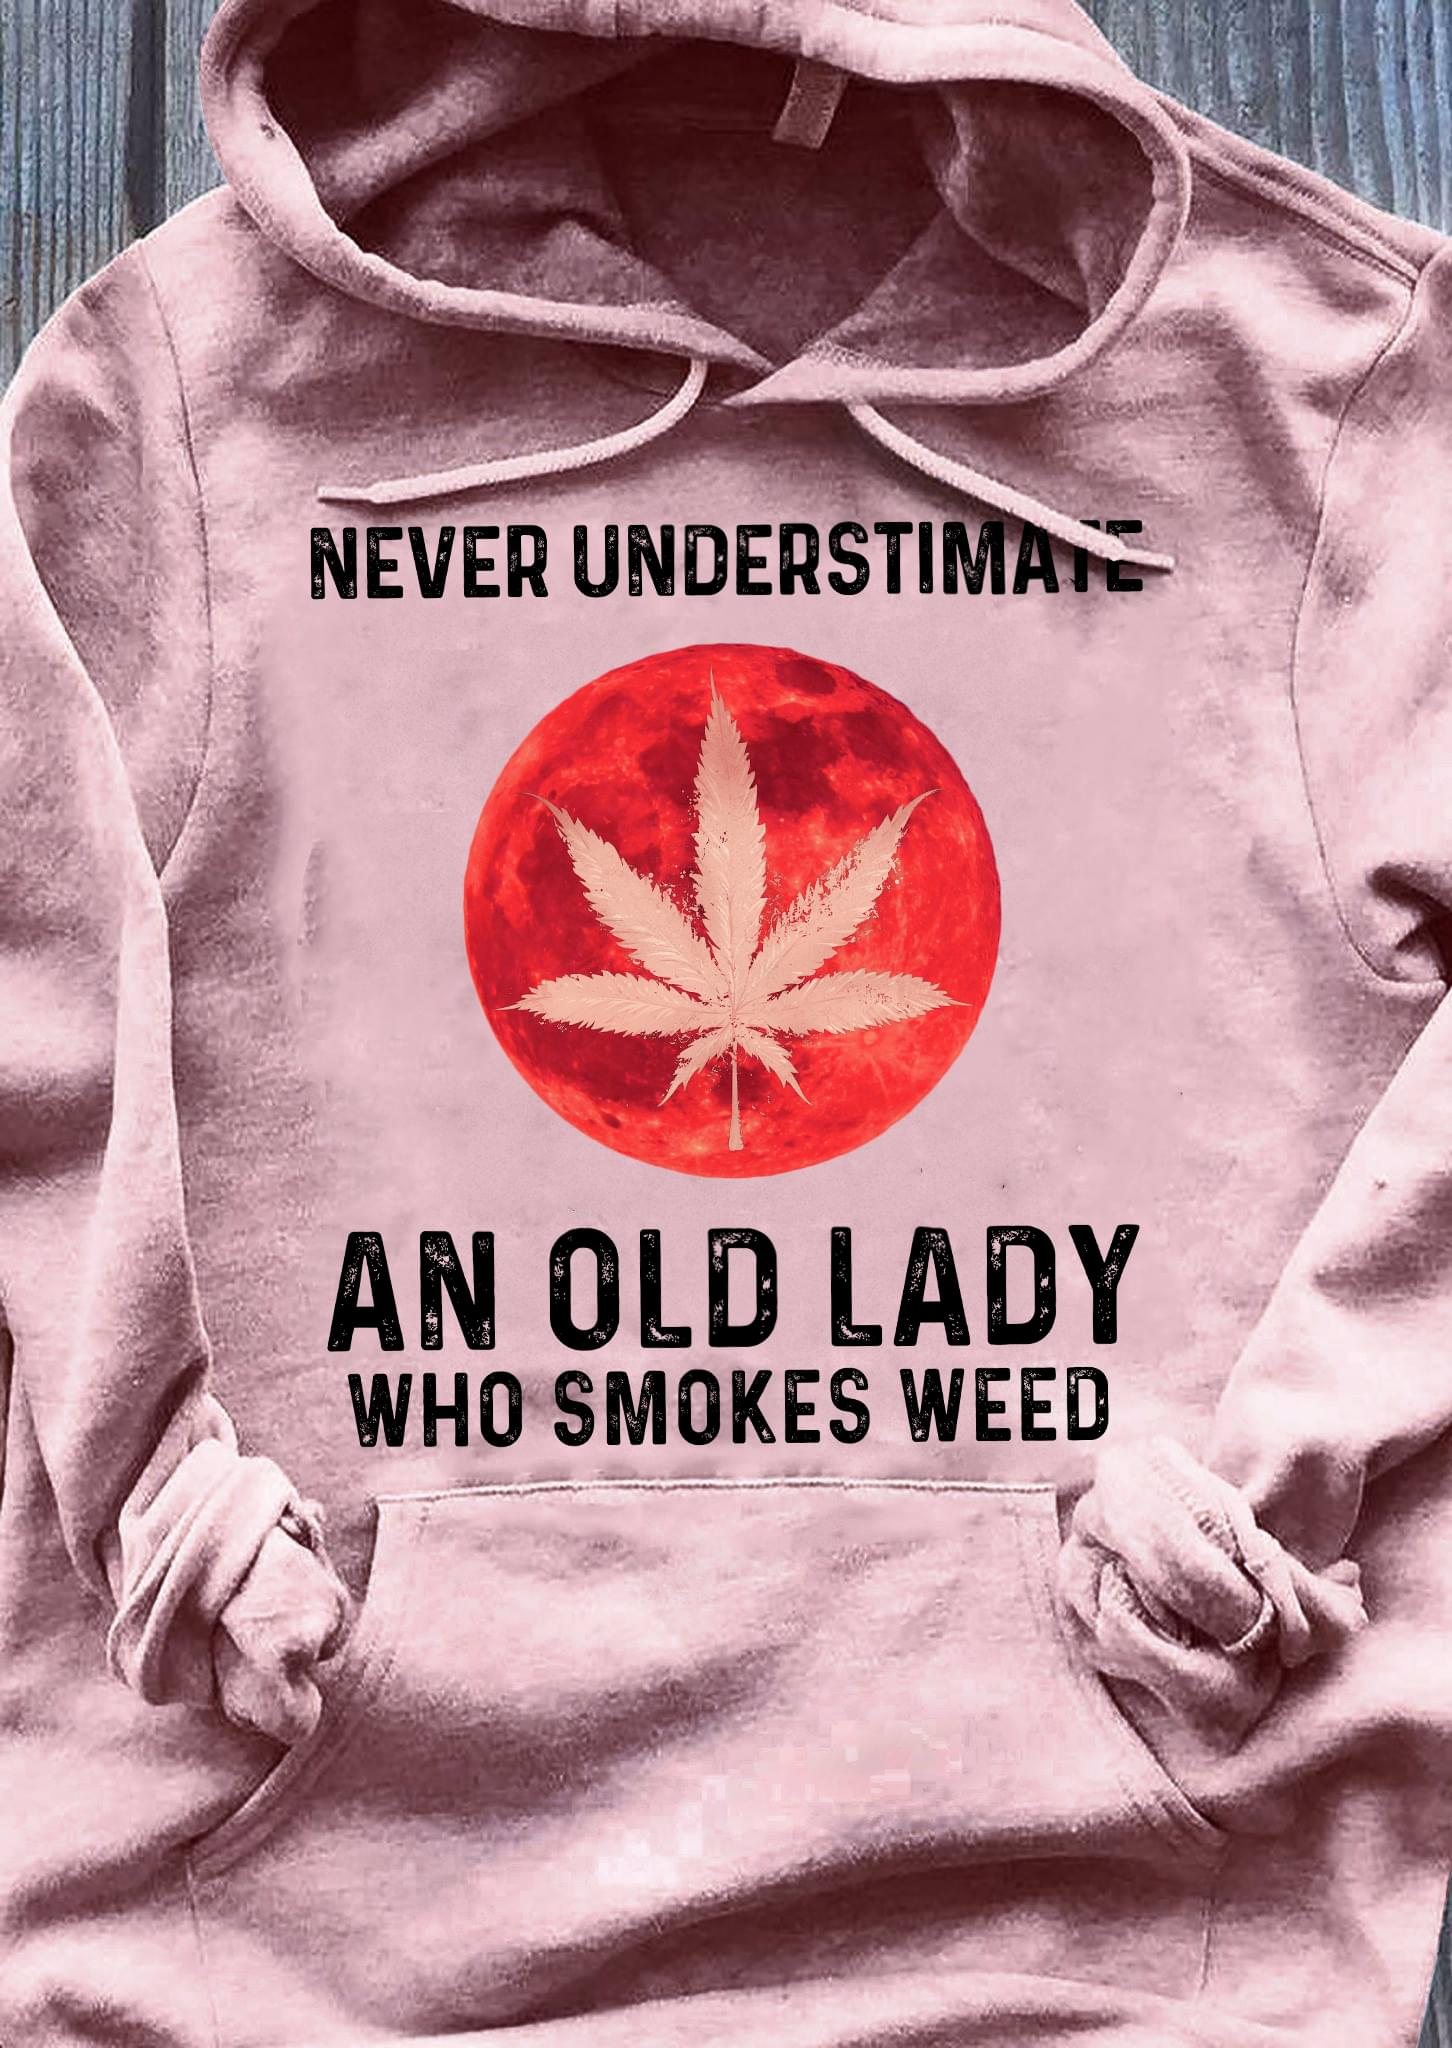 Never Understimate An Old Lady Who Smokes Weed cotton t-shirt Hoodie Mug